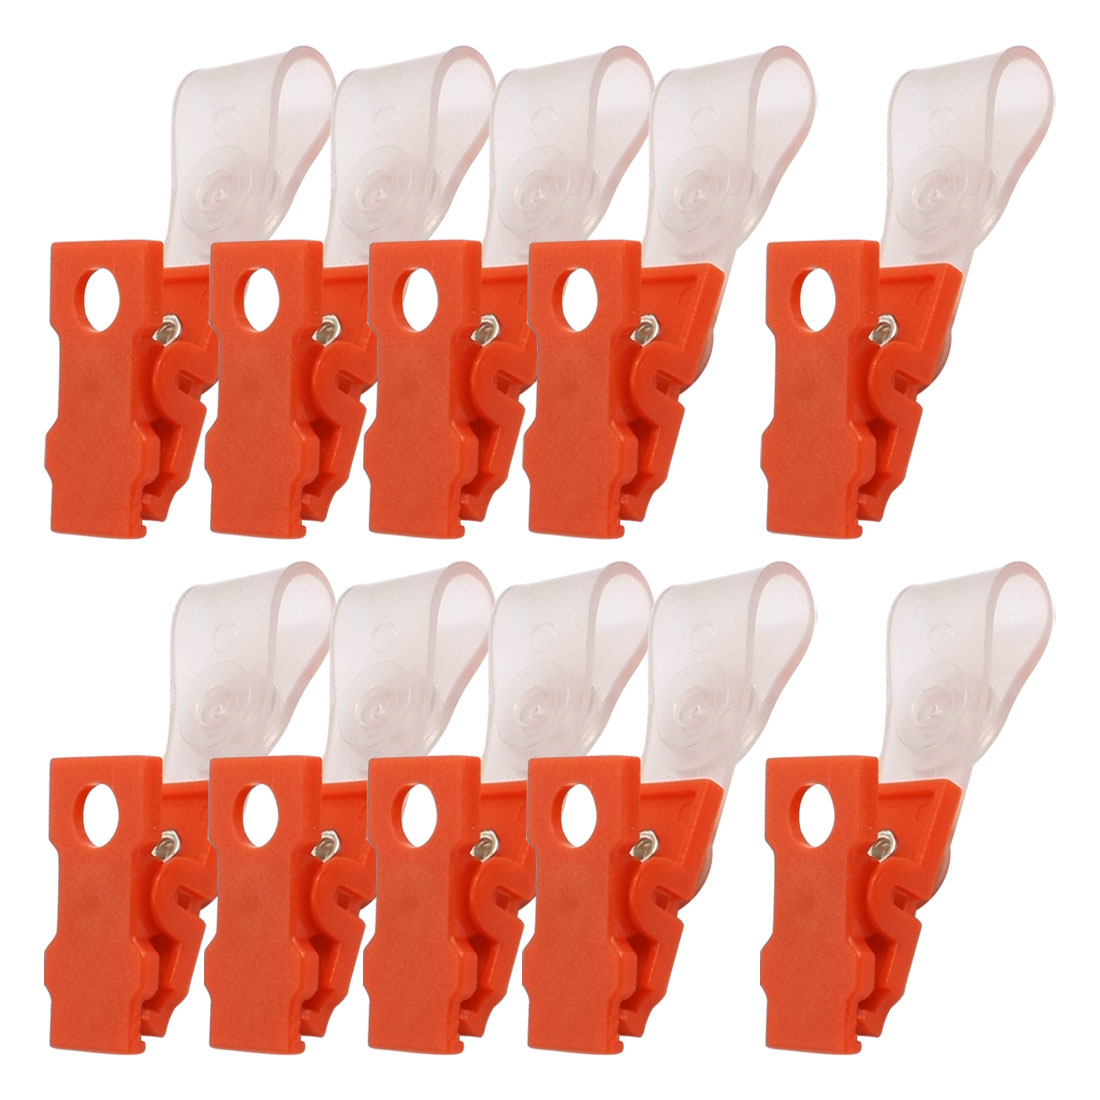 Unique Bargains 10 Pcs Plastic Retractable Badge Clip ID Card Name Tag Office Bank Students Stationery Clear Orange Red